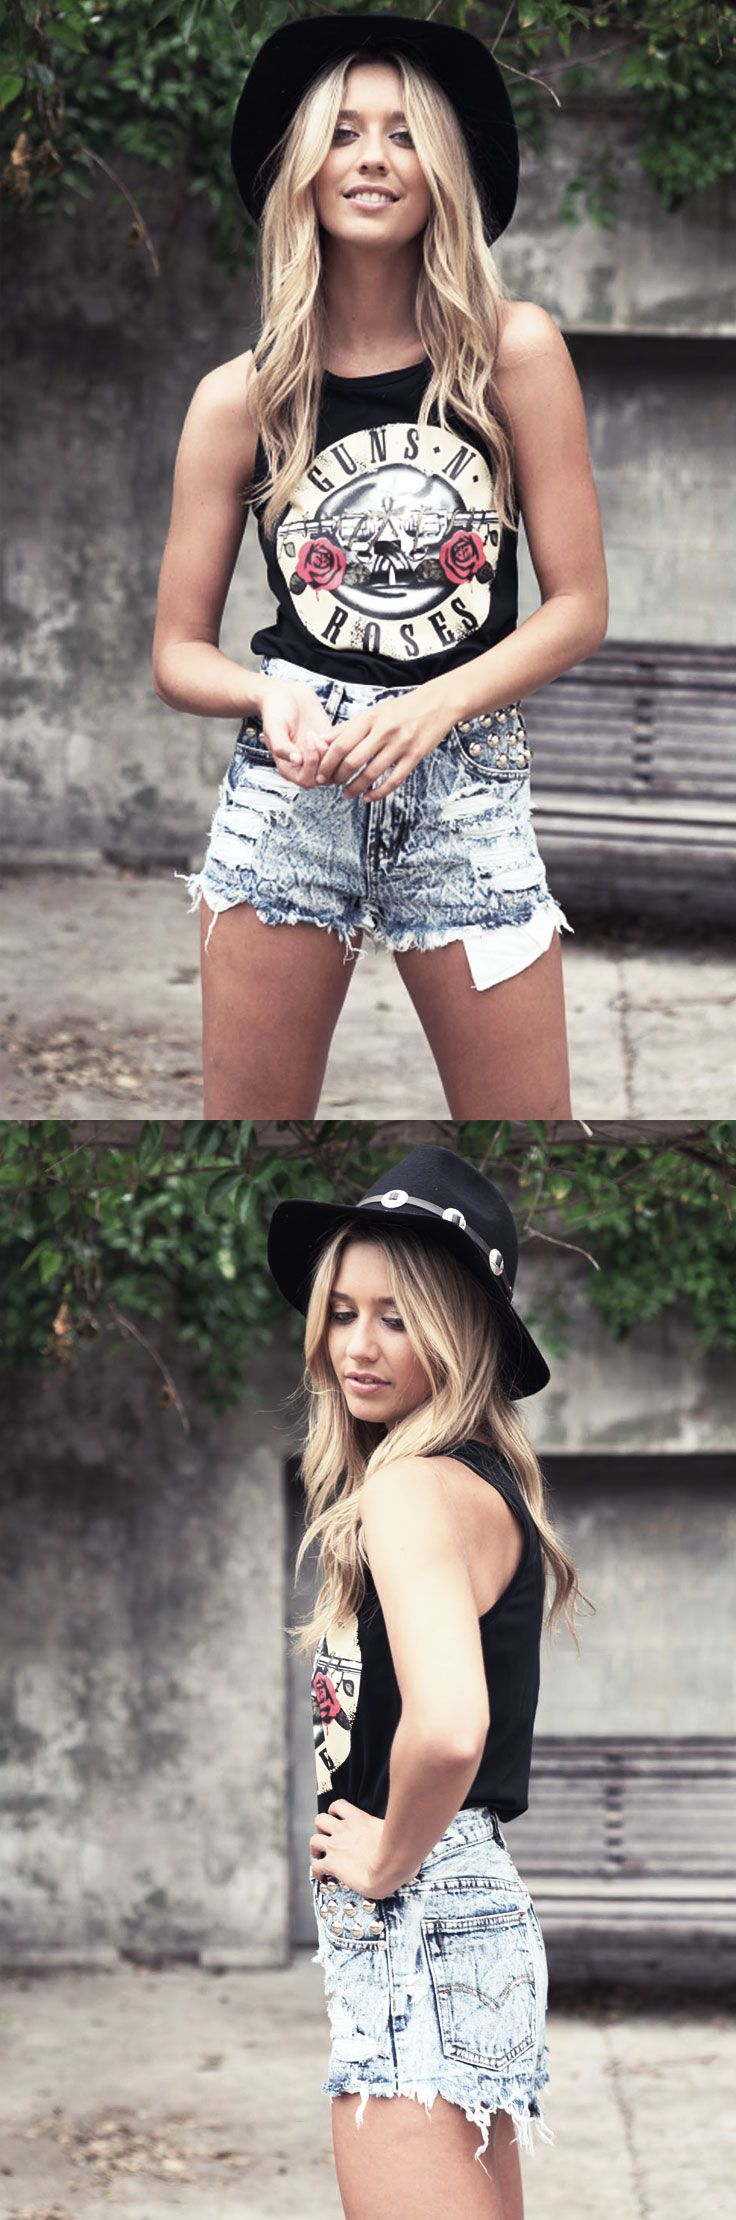 Shop badass soft grunge and 90s inspired boyfriend shorts and tank tops from RebelsMarket.